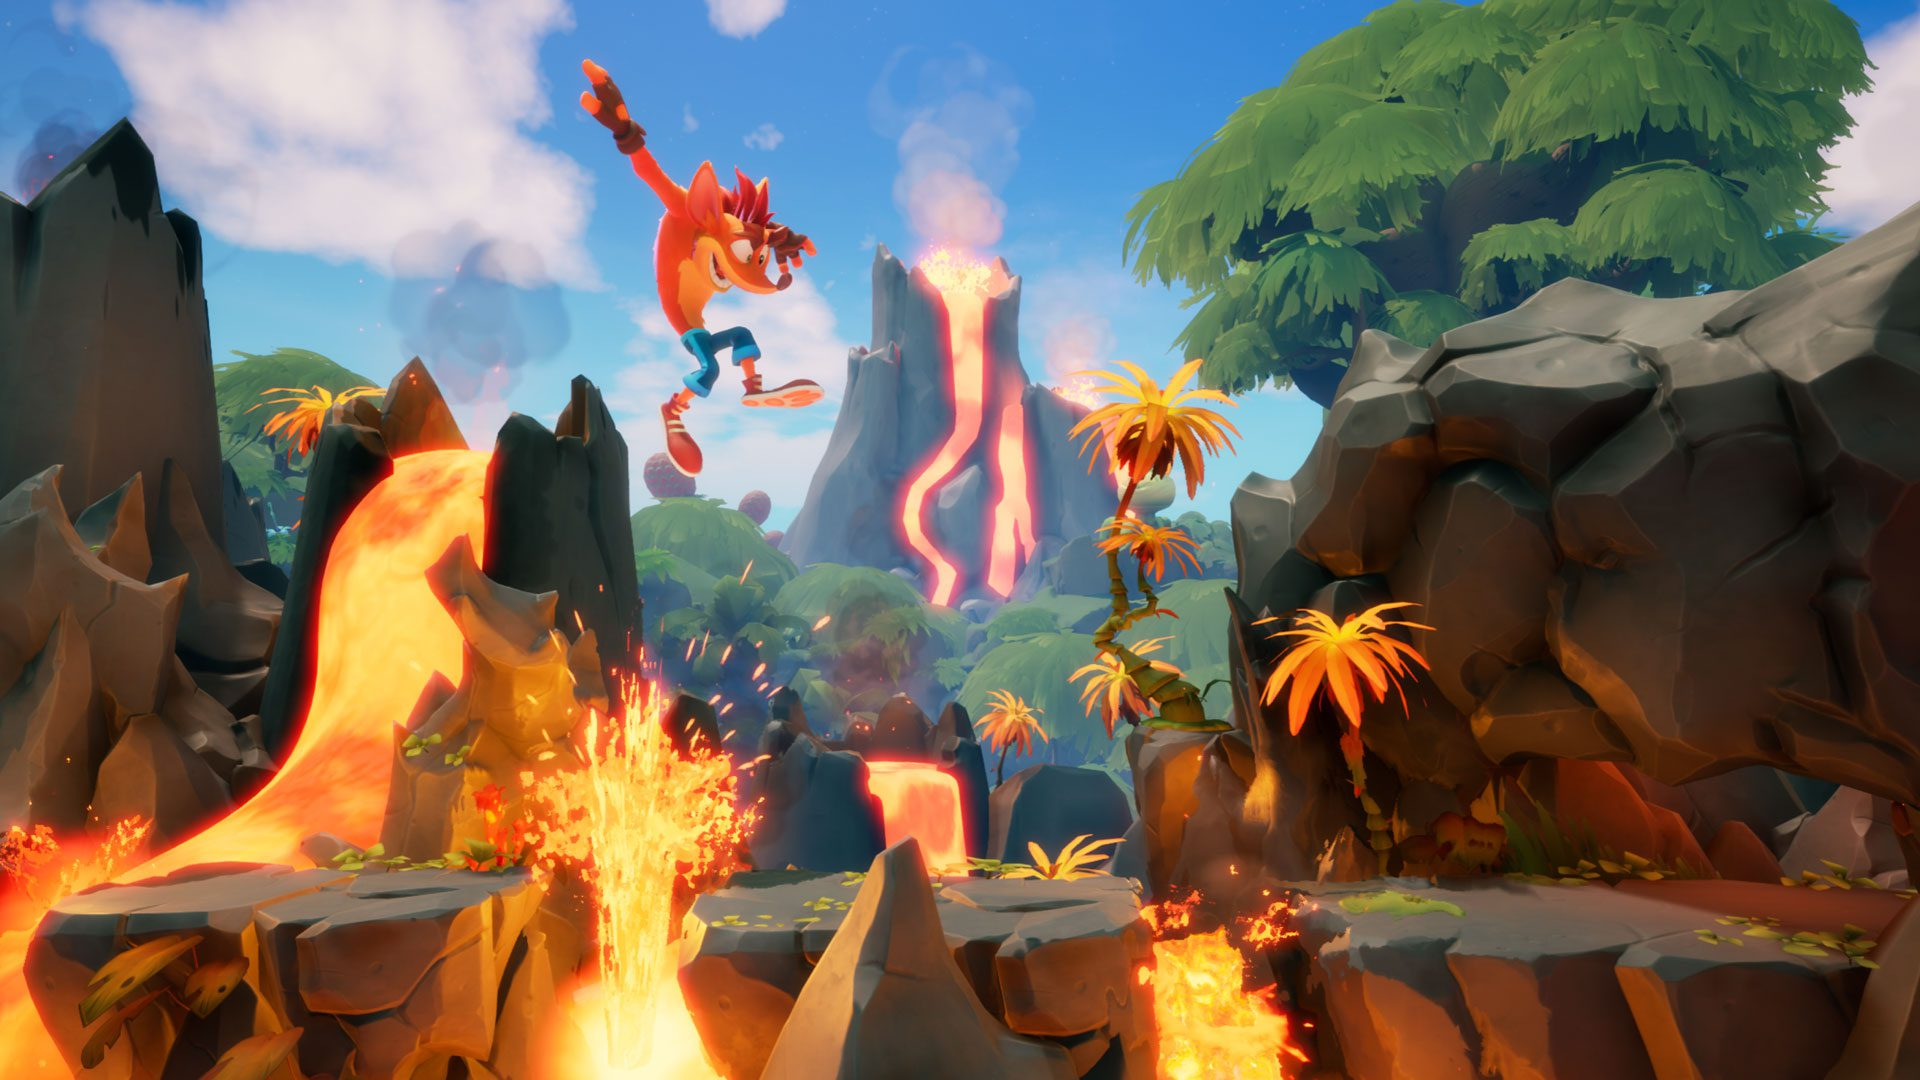 Crash Bandicoot 4: It's About Time.